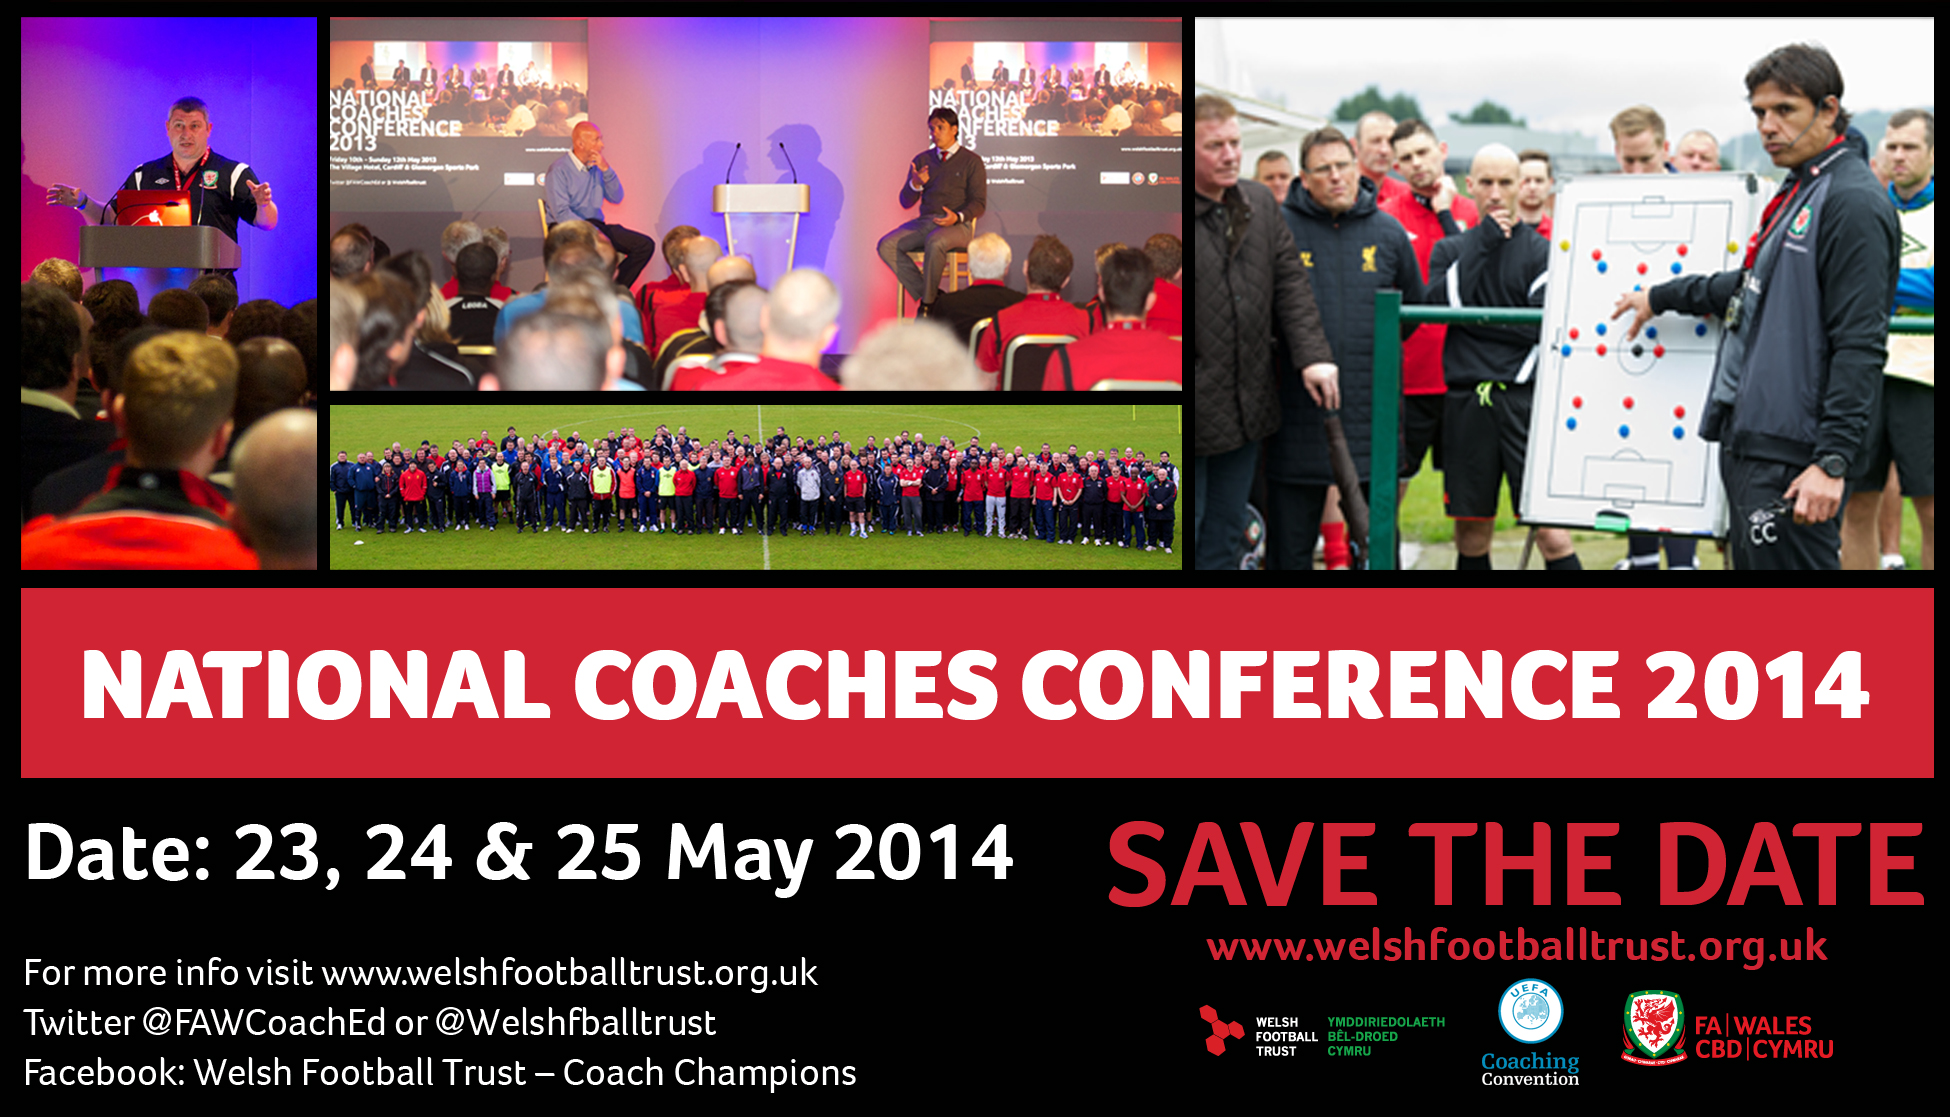 National Coaches Conference 2014